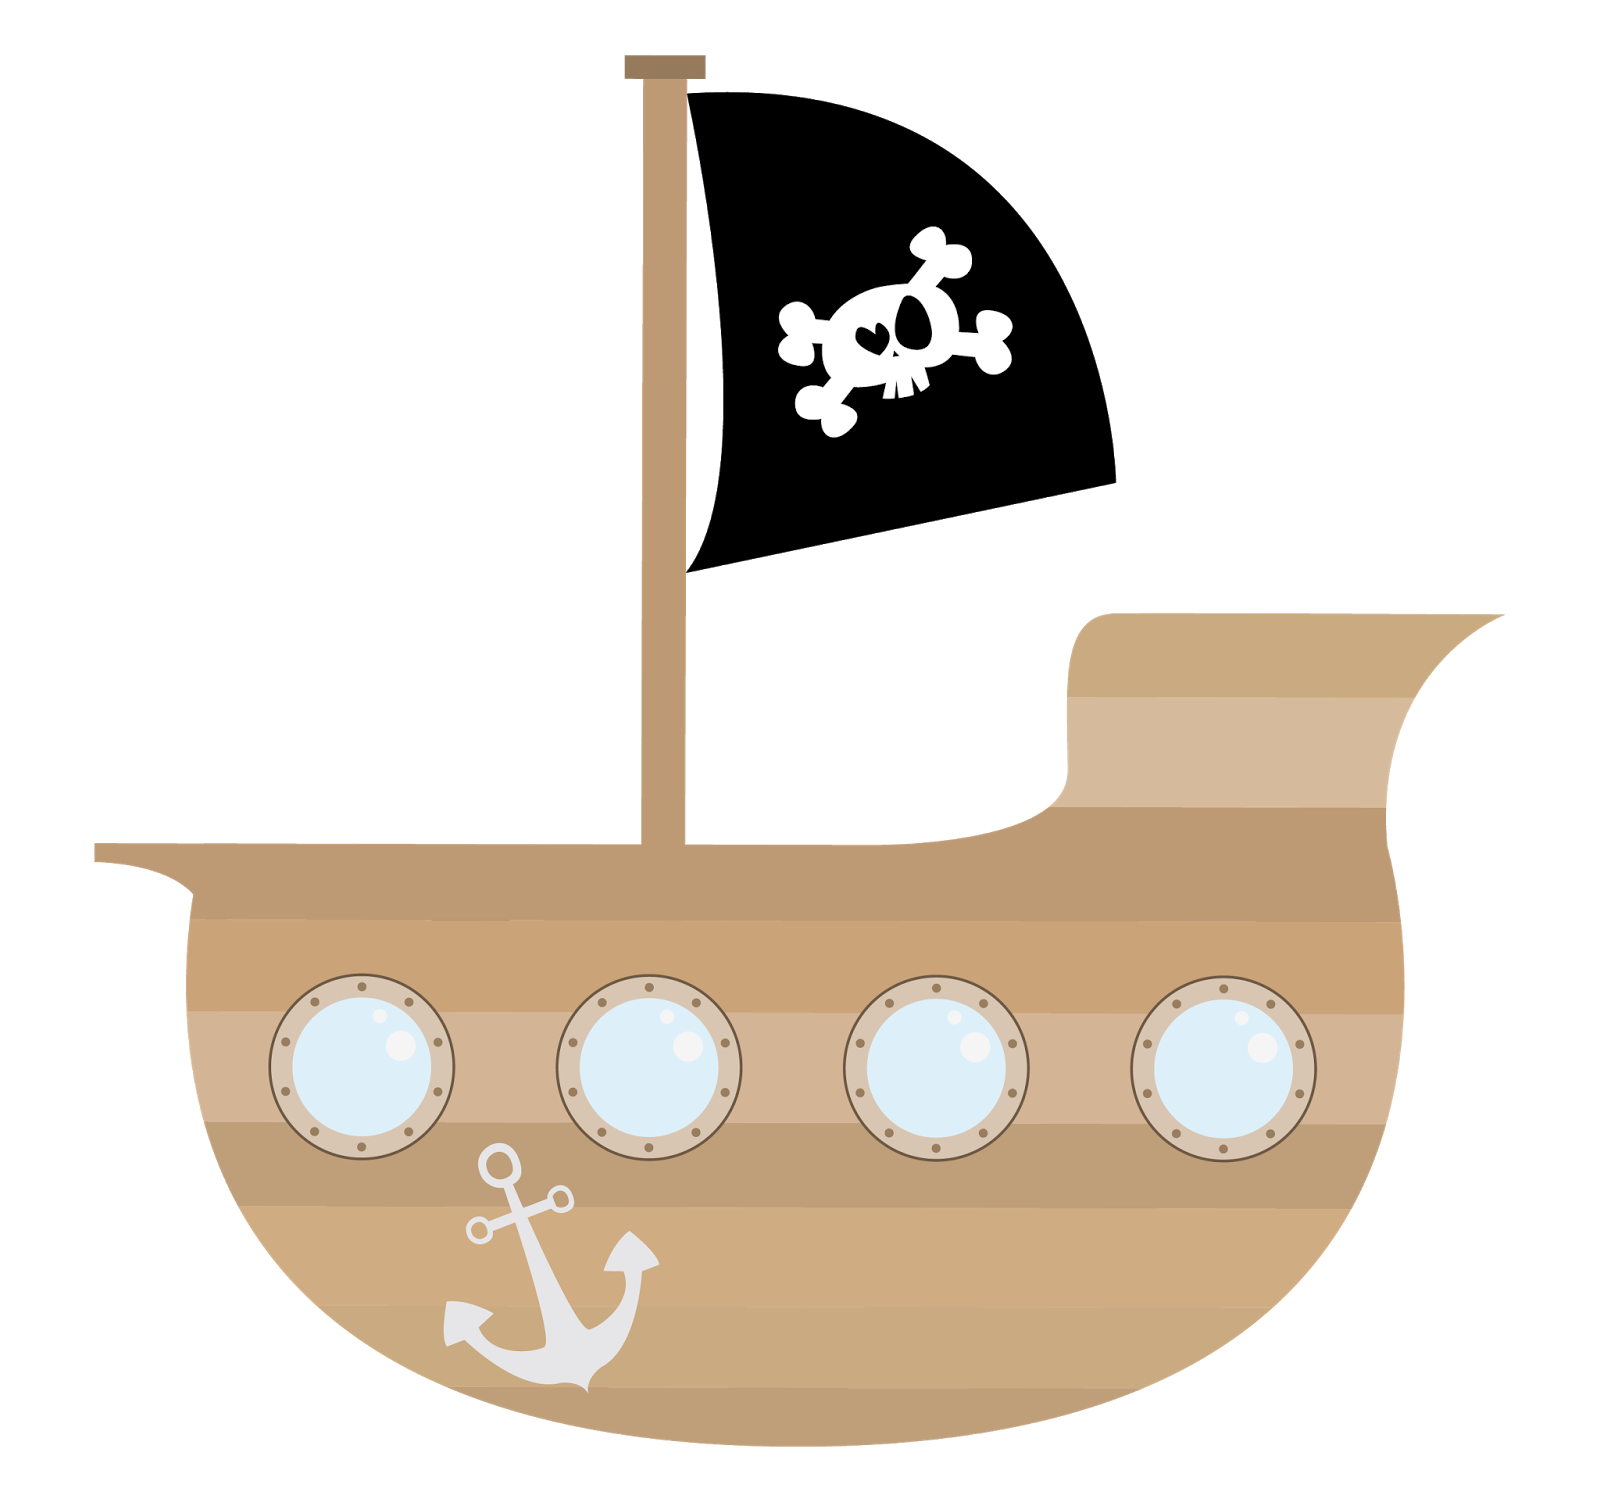 Spaceship clipart rescue. Pirate ship kid story